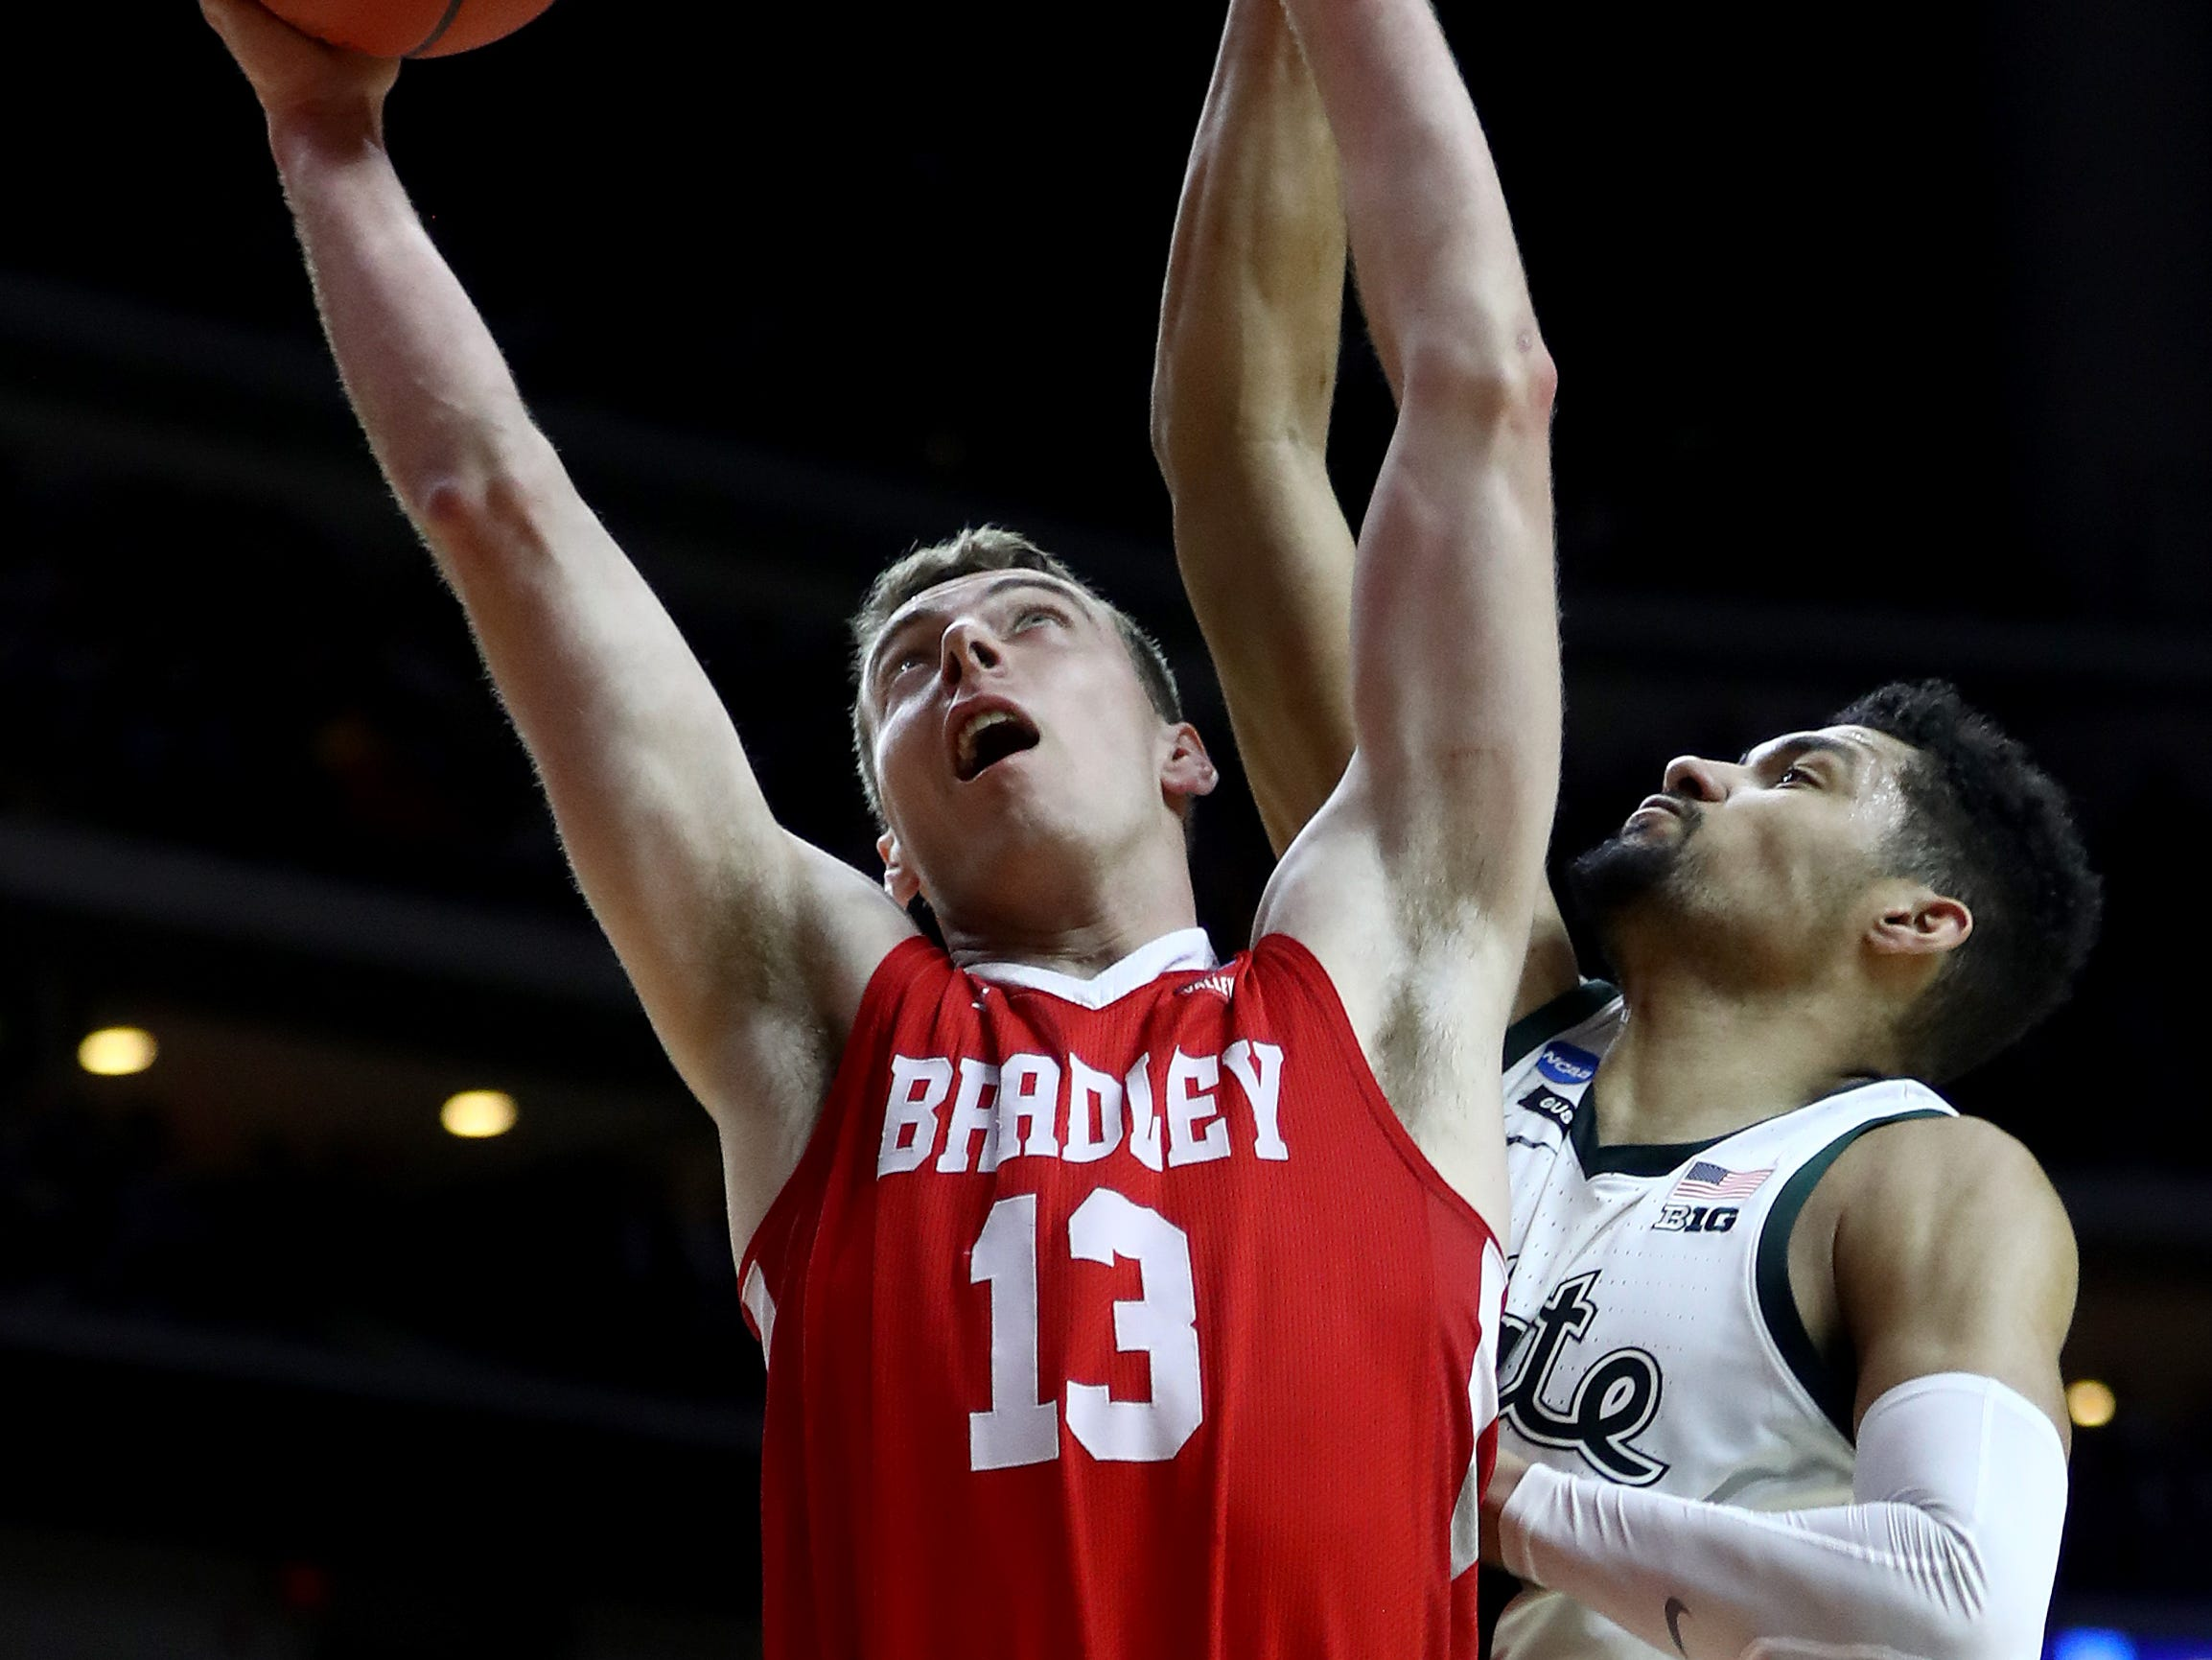 Luuk van Bree #13 of the Bradley Braves goes up for a shot against Kenny Goins #25 of the Michigan State Spartans during their game in the First Round of the NCAA Basketball Tournament at Wells Fargo Arena on March 21, 2019 in Des Moines, Iowa